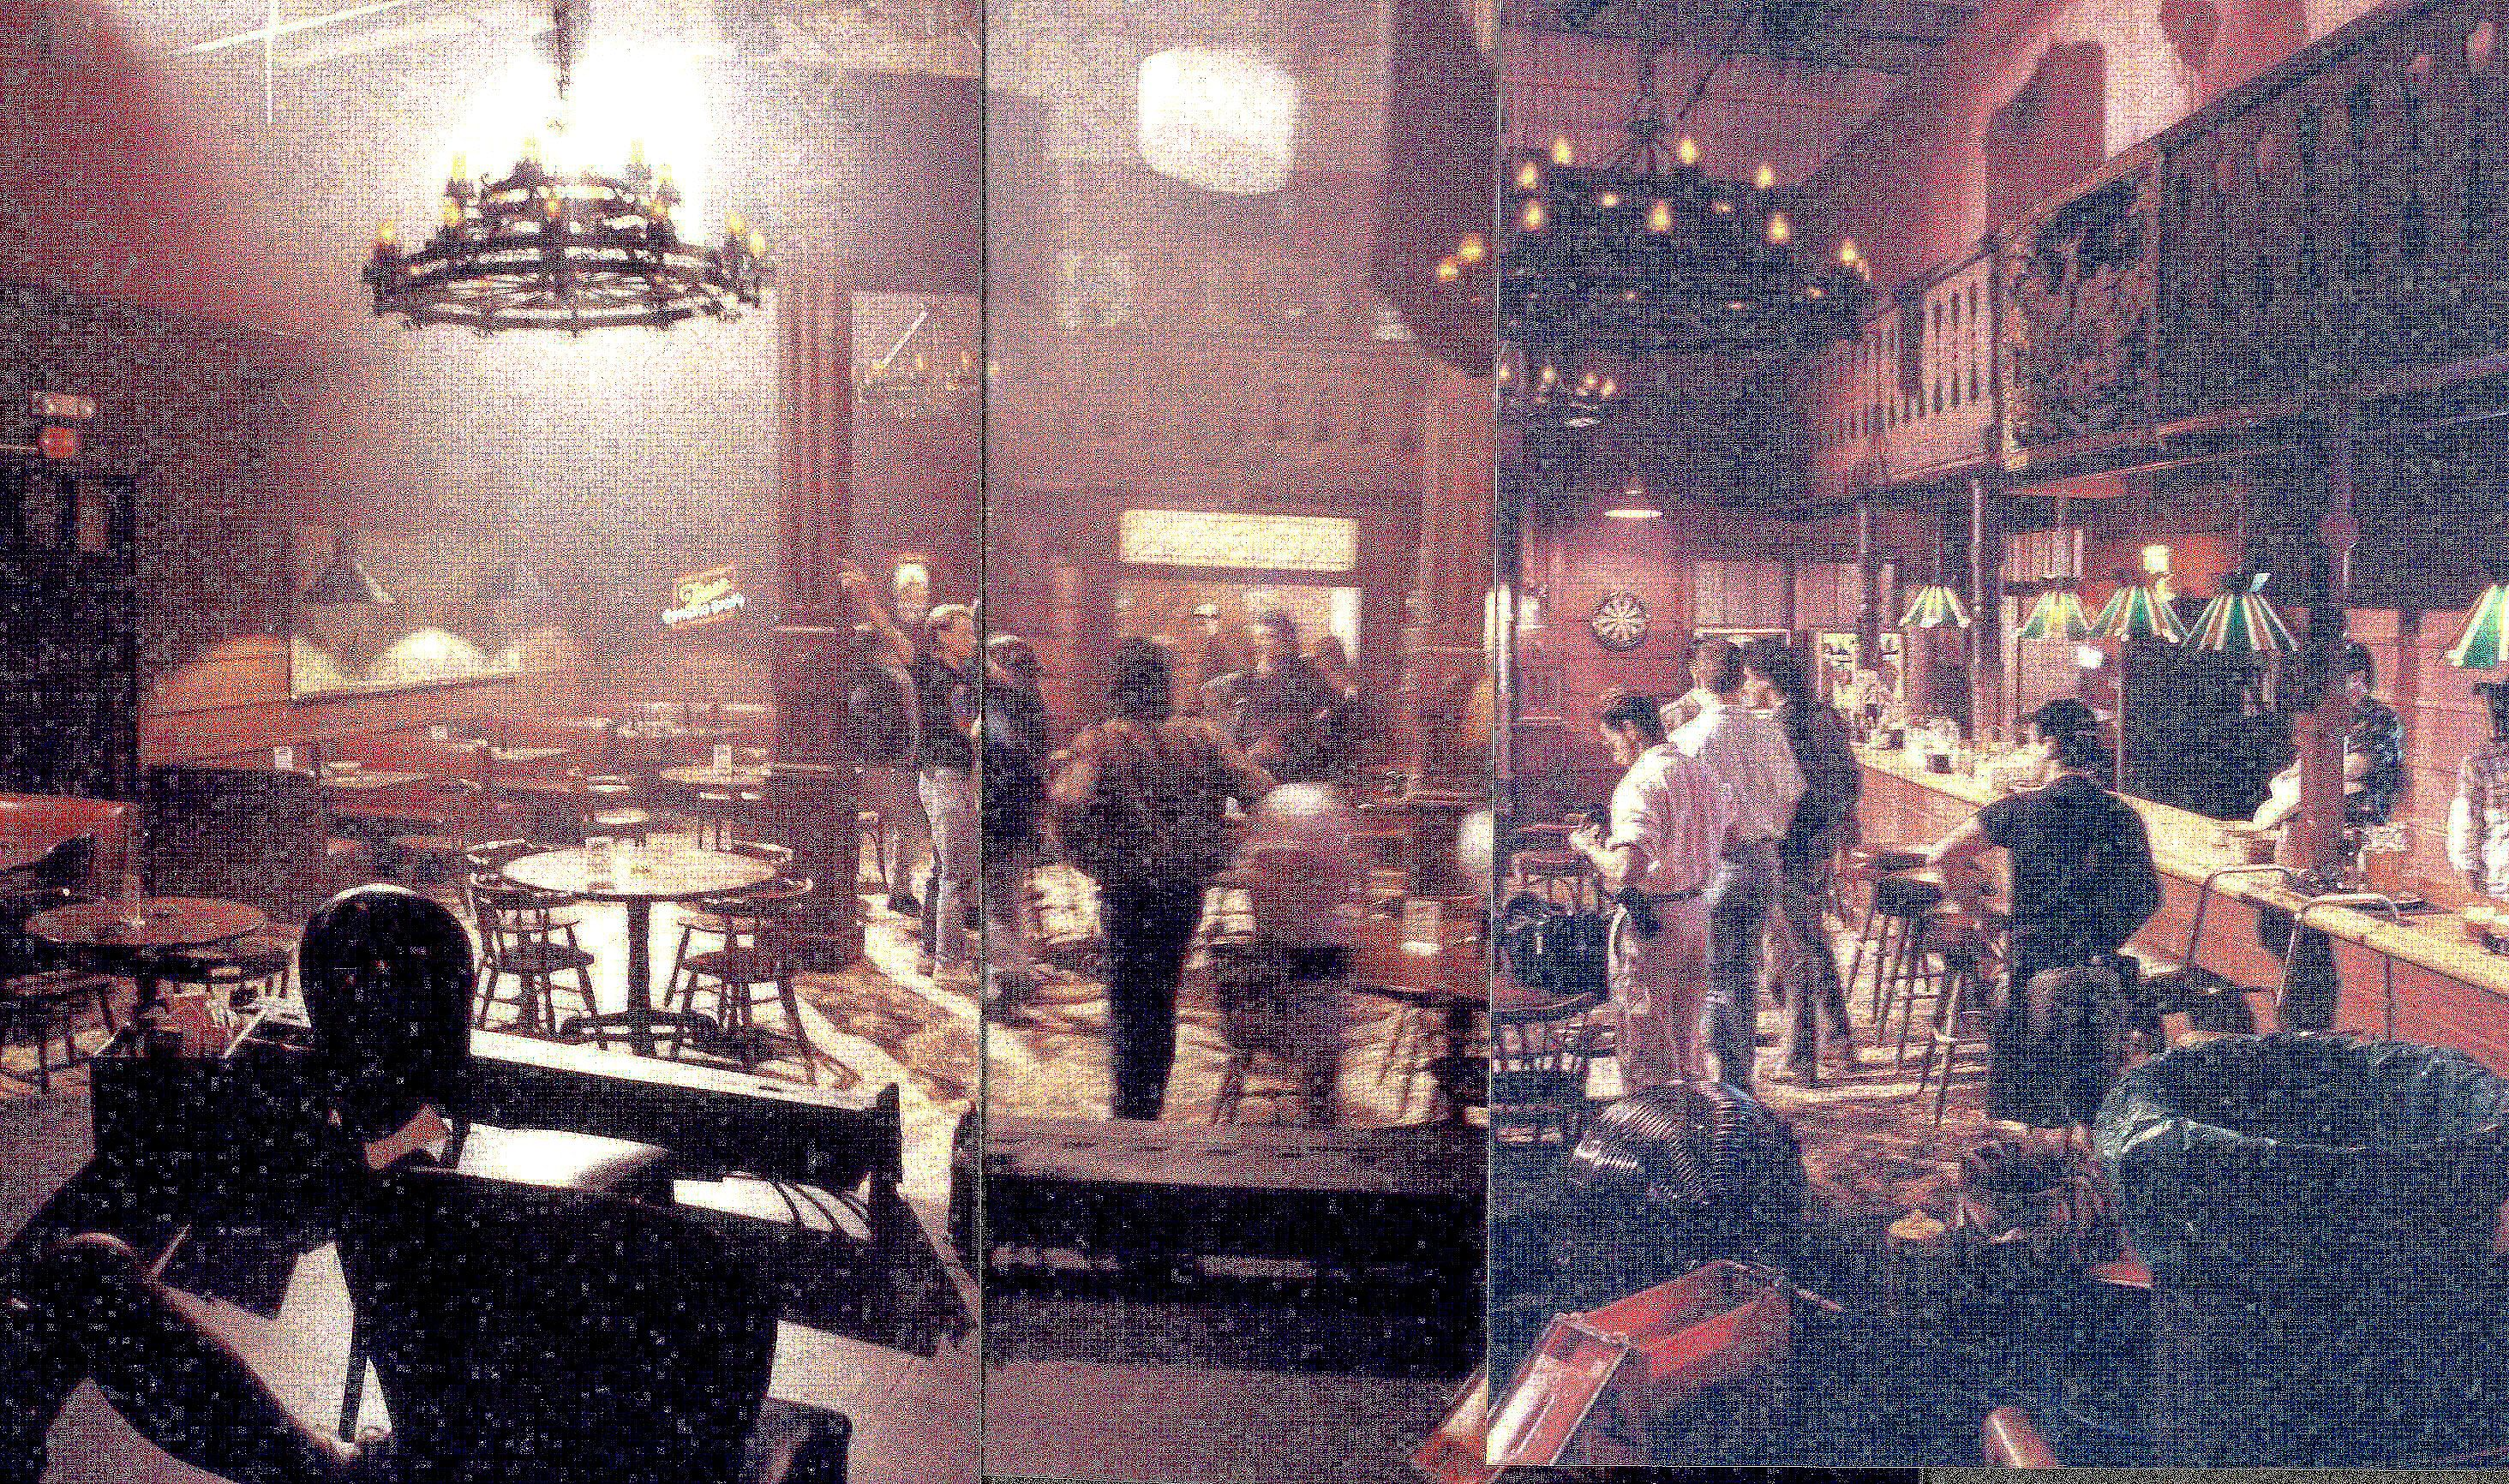 On set photograph of Roadhouse (Bang Bang Bar) from Twin Peaks. Set design by Richard Hoover